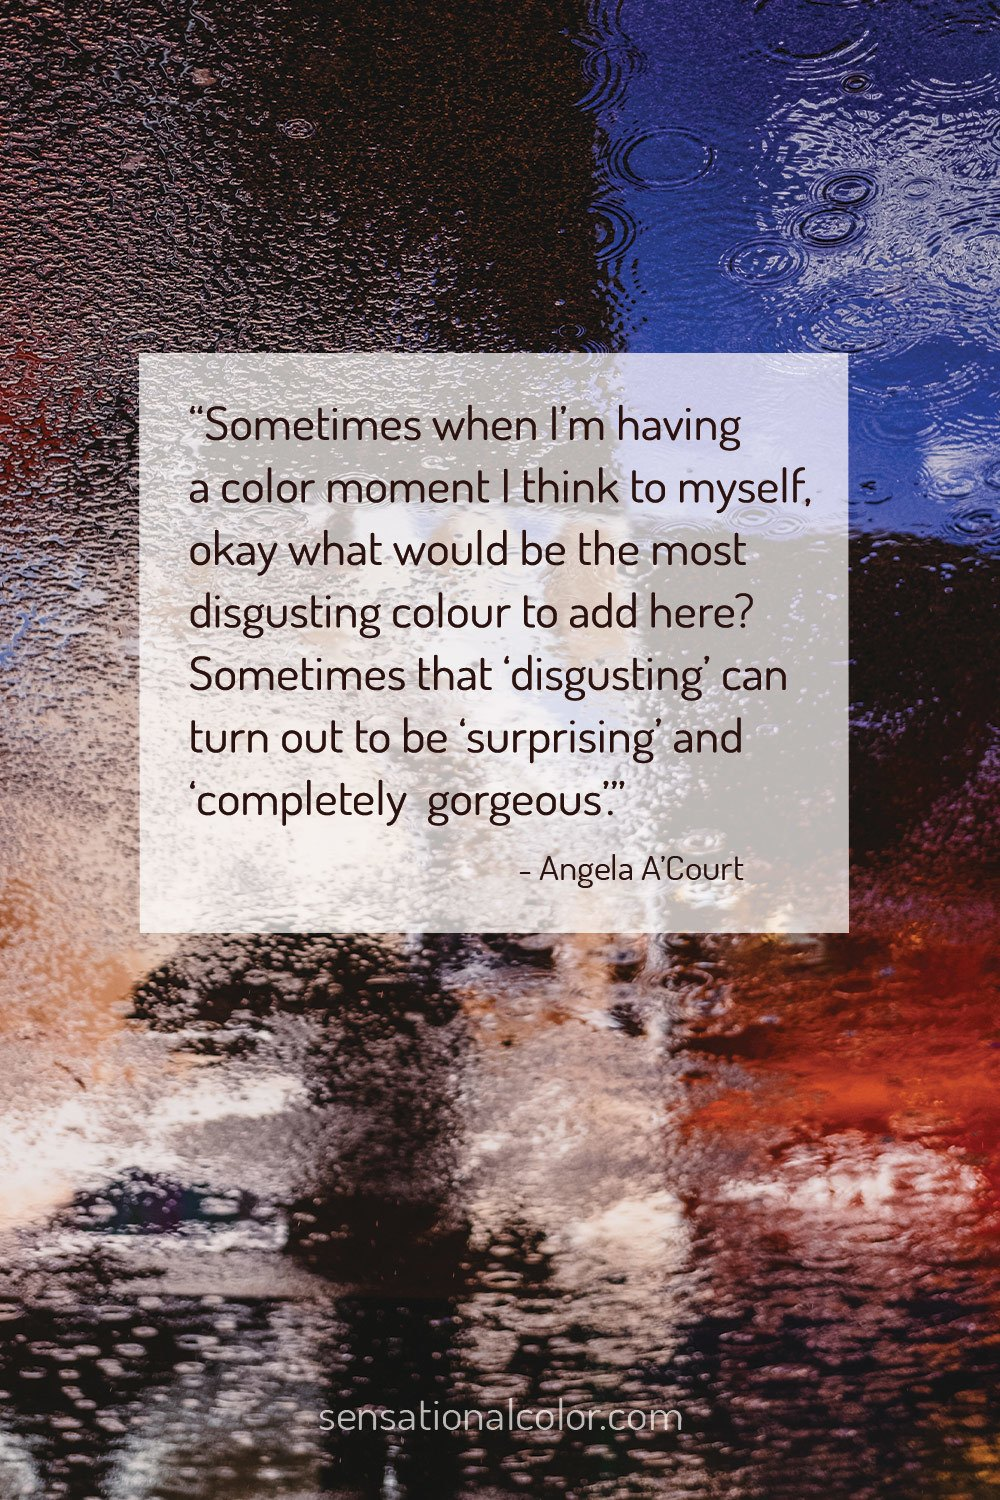 """Sometimes when I'm having a colour moment I think to myself, okay what would be the most disgusting colour to add here? Sometimes that 'disgusting' can turn out to be 'surprising' and 'completely gorgeous'."" - Angela A'Court"